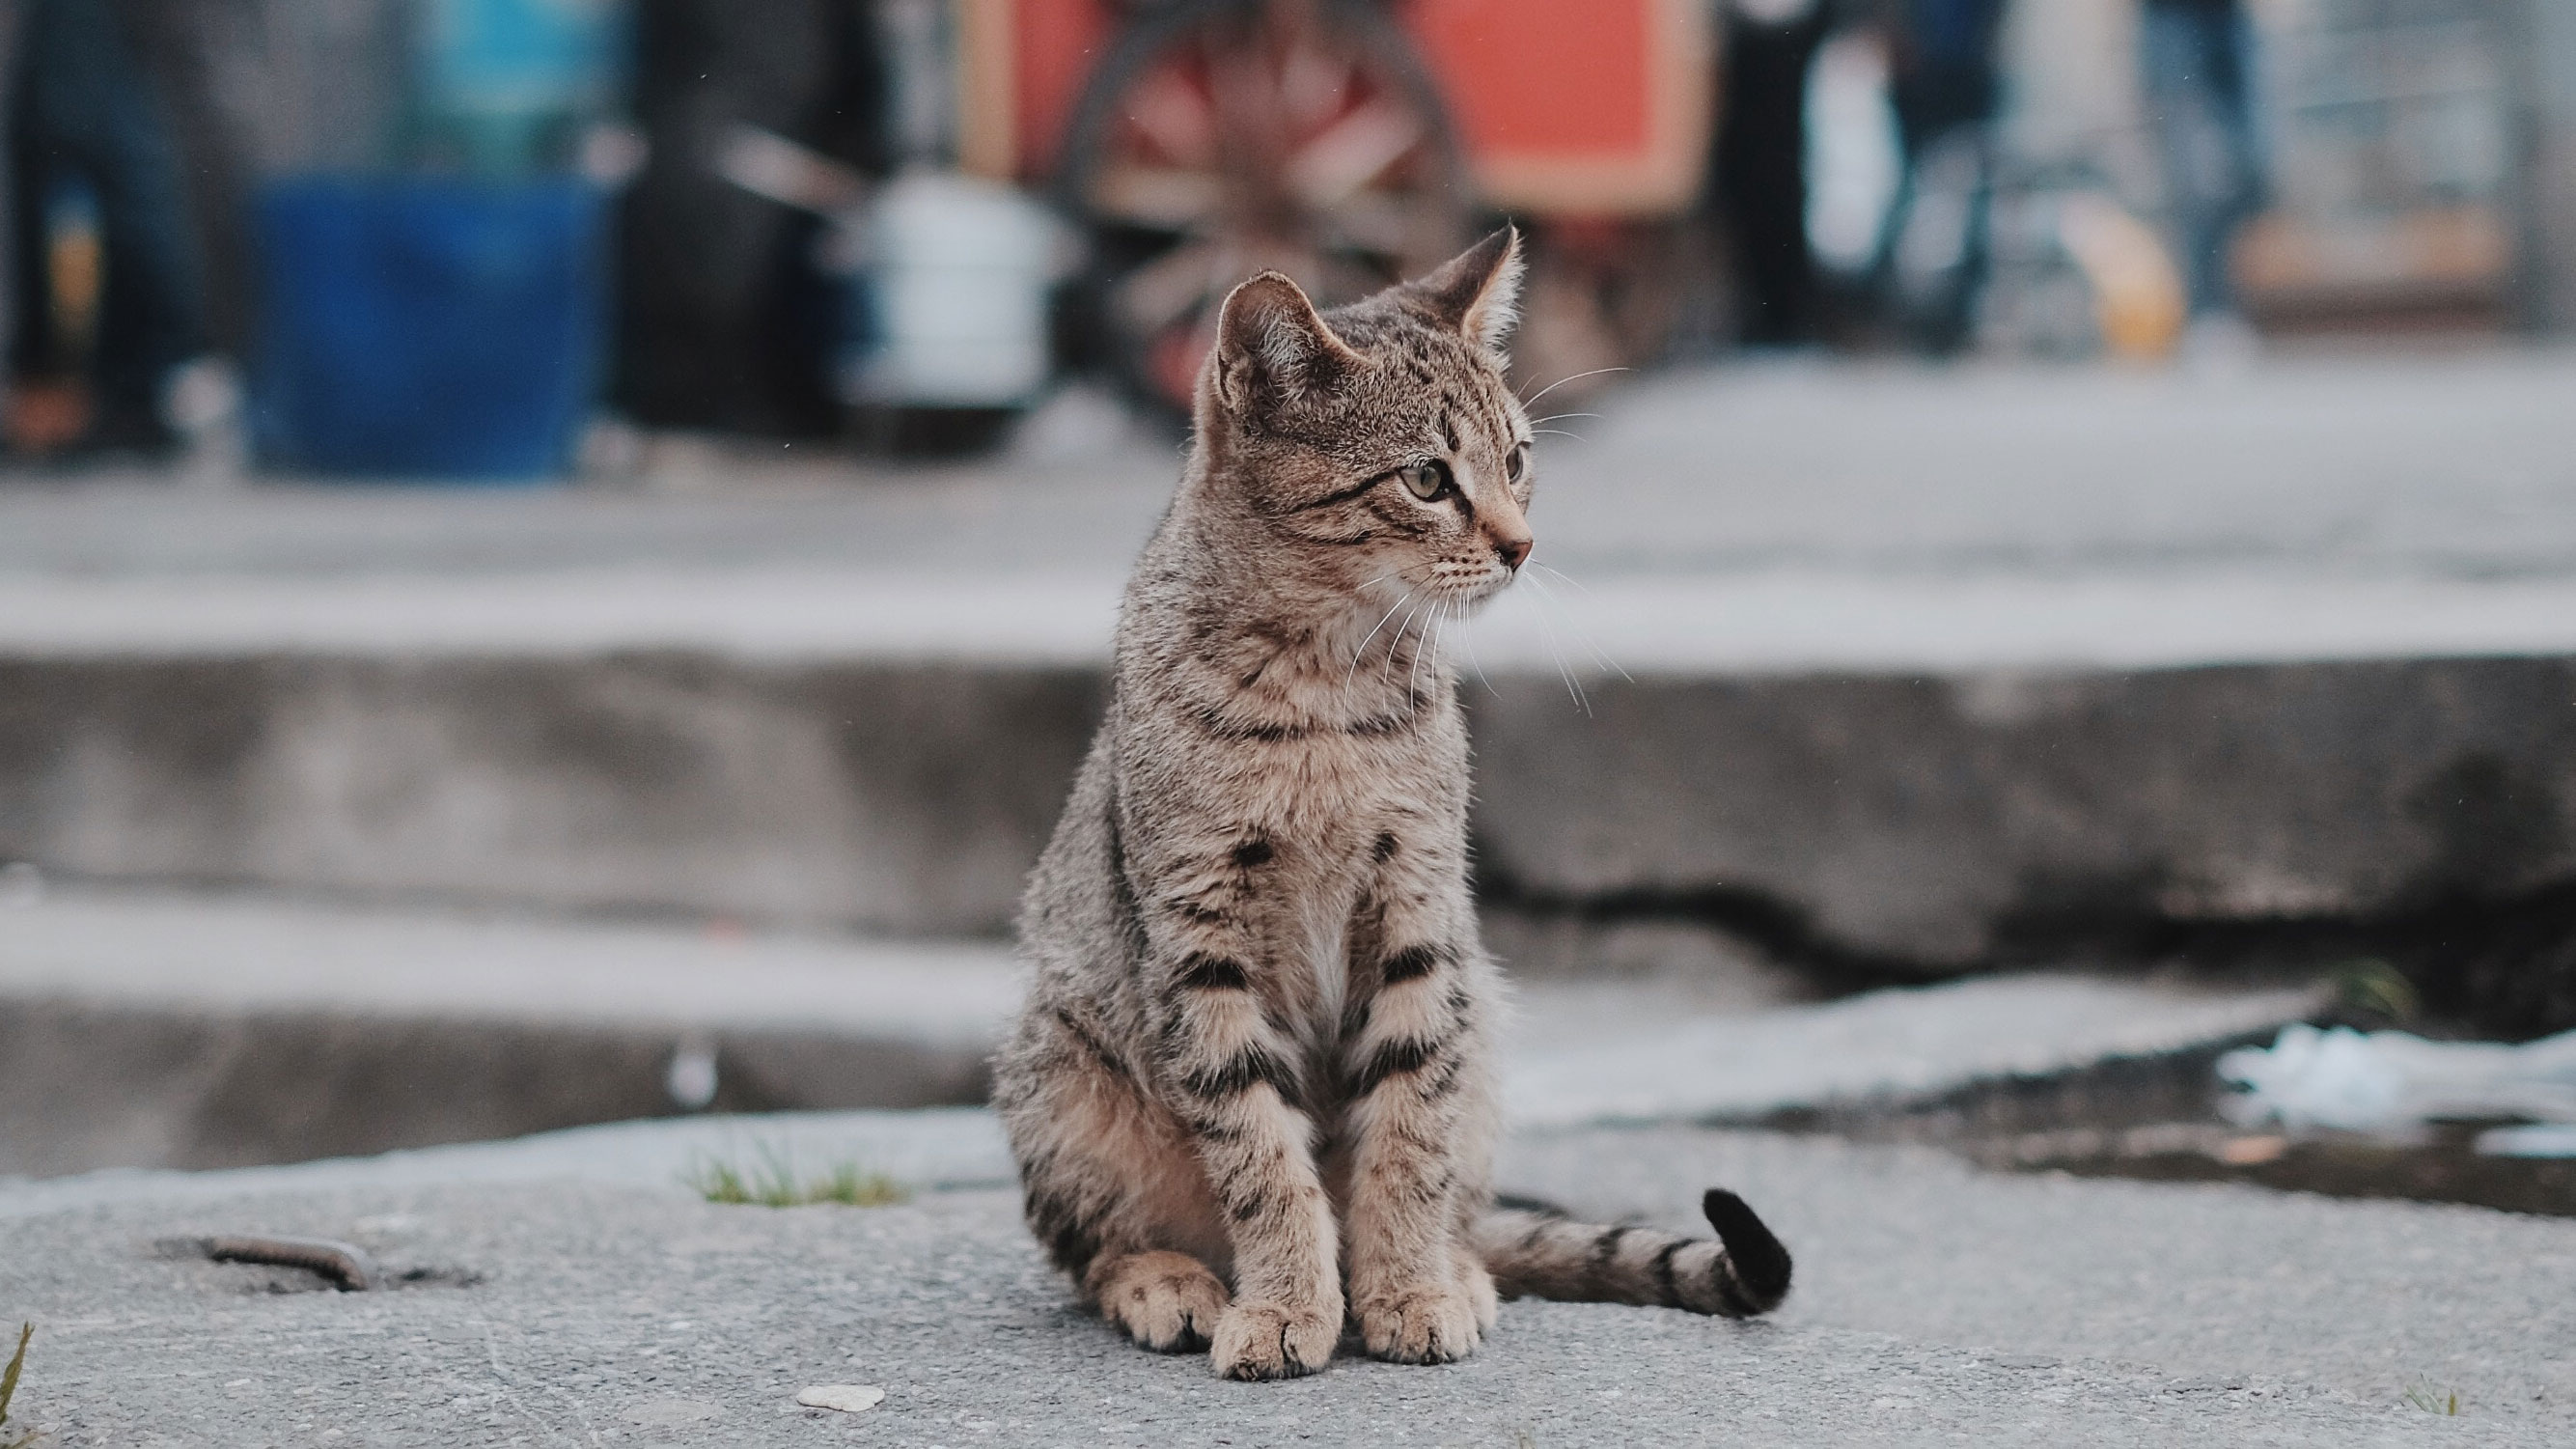 Picture of cat on pavement